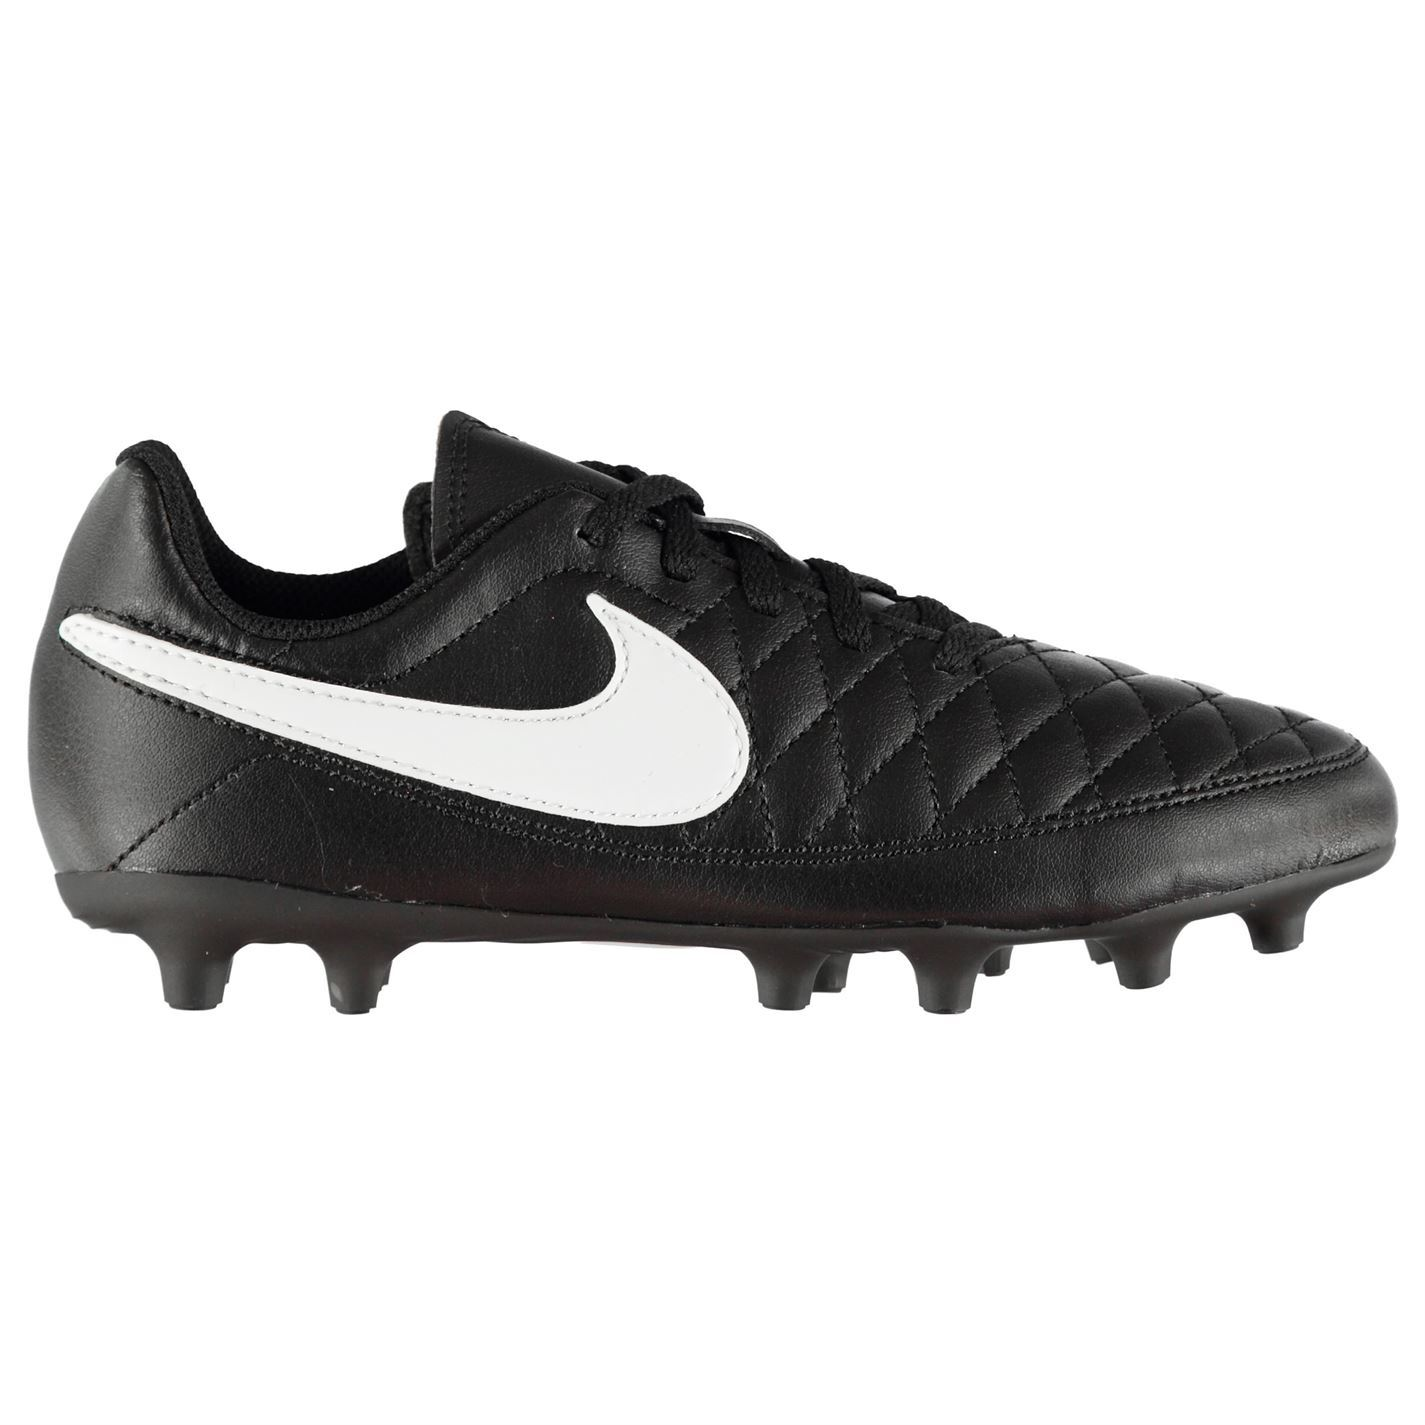 Nike-majestry-FG-Firm-Ground-Chaussures-De-Football-Enfants-Football-Chaussures-Crampons miniature 12